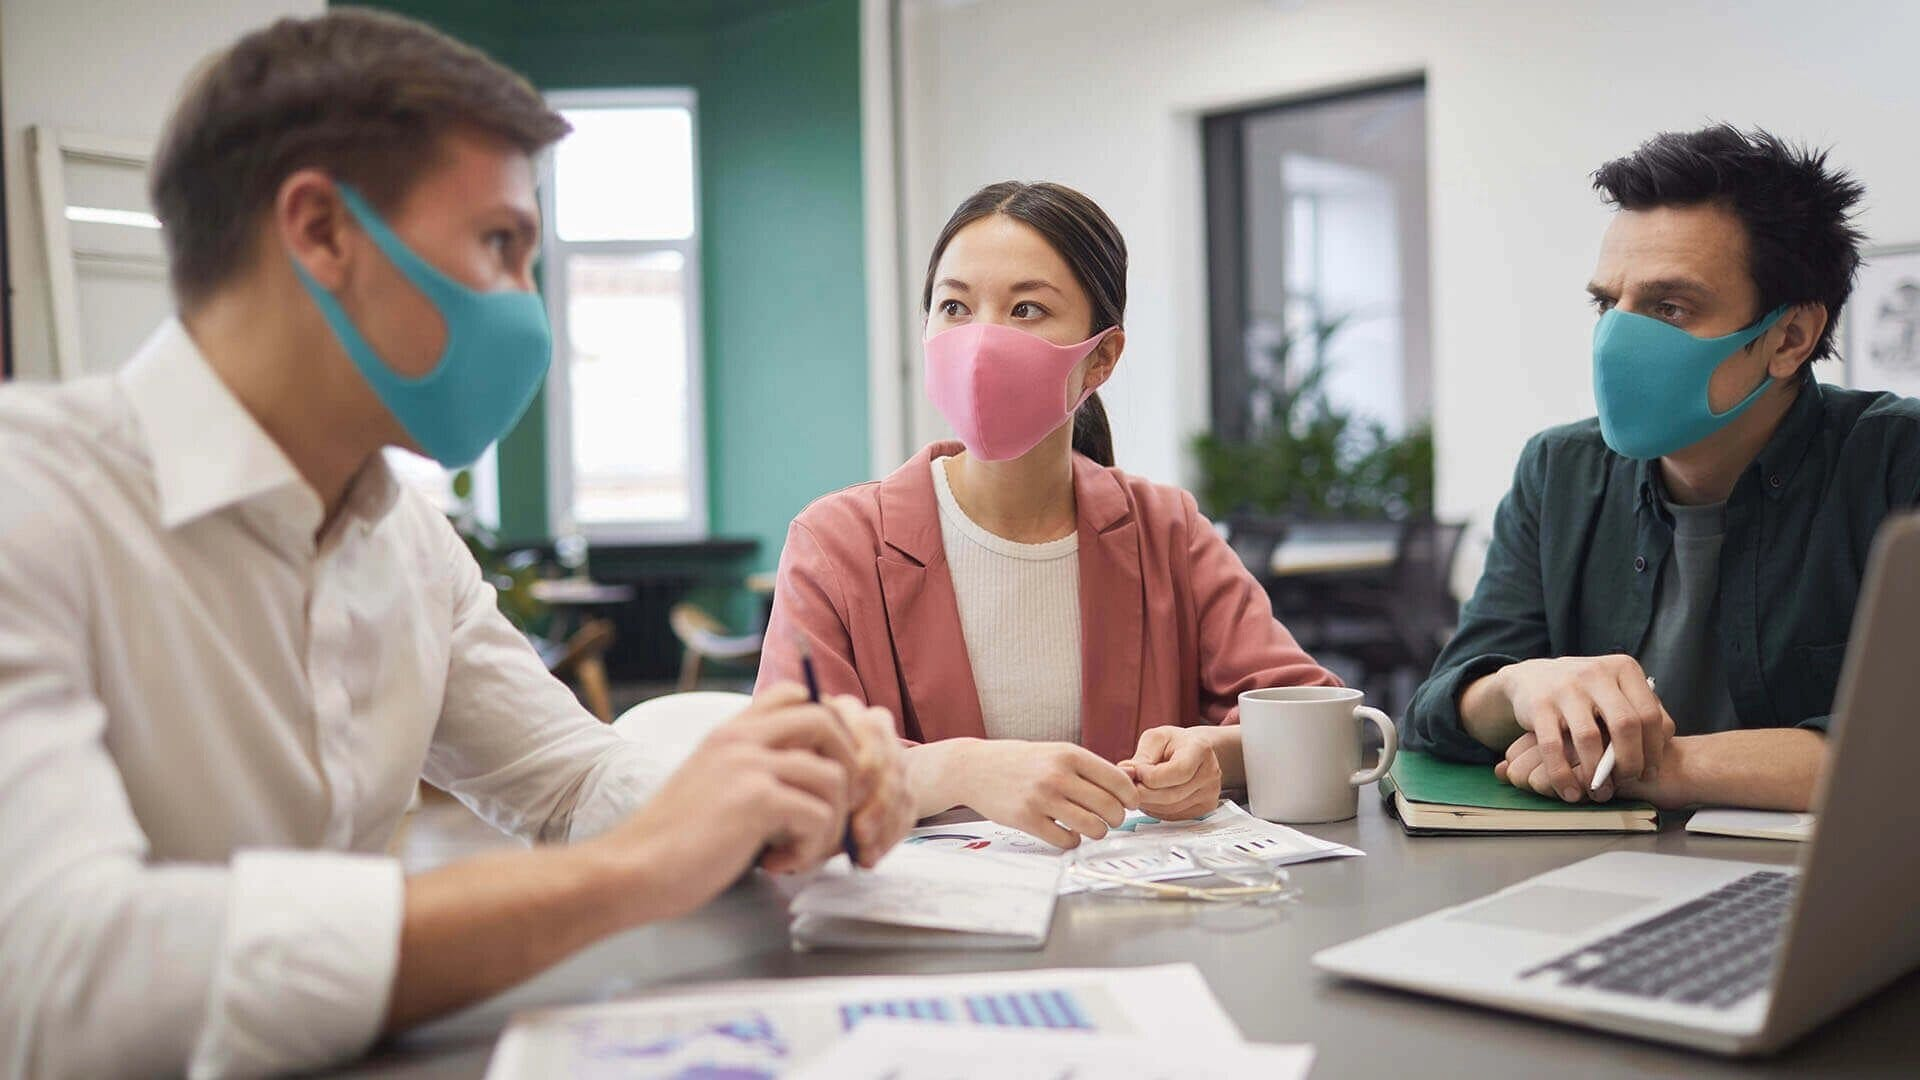 three people with mouth covers talking at desk